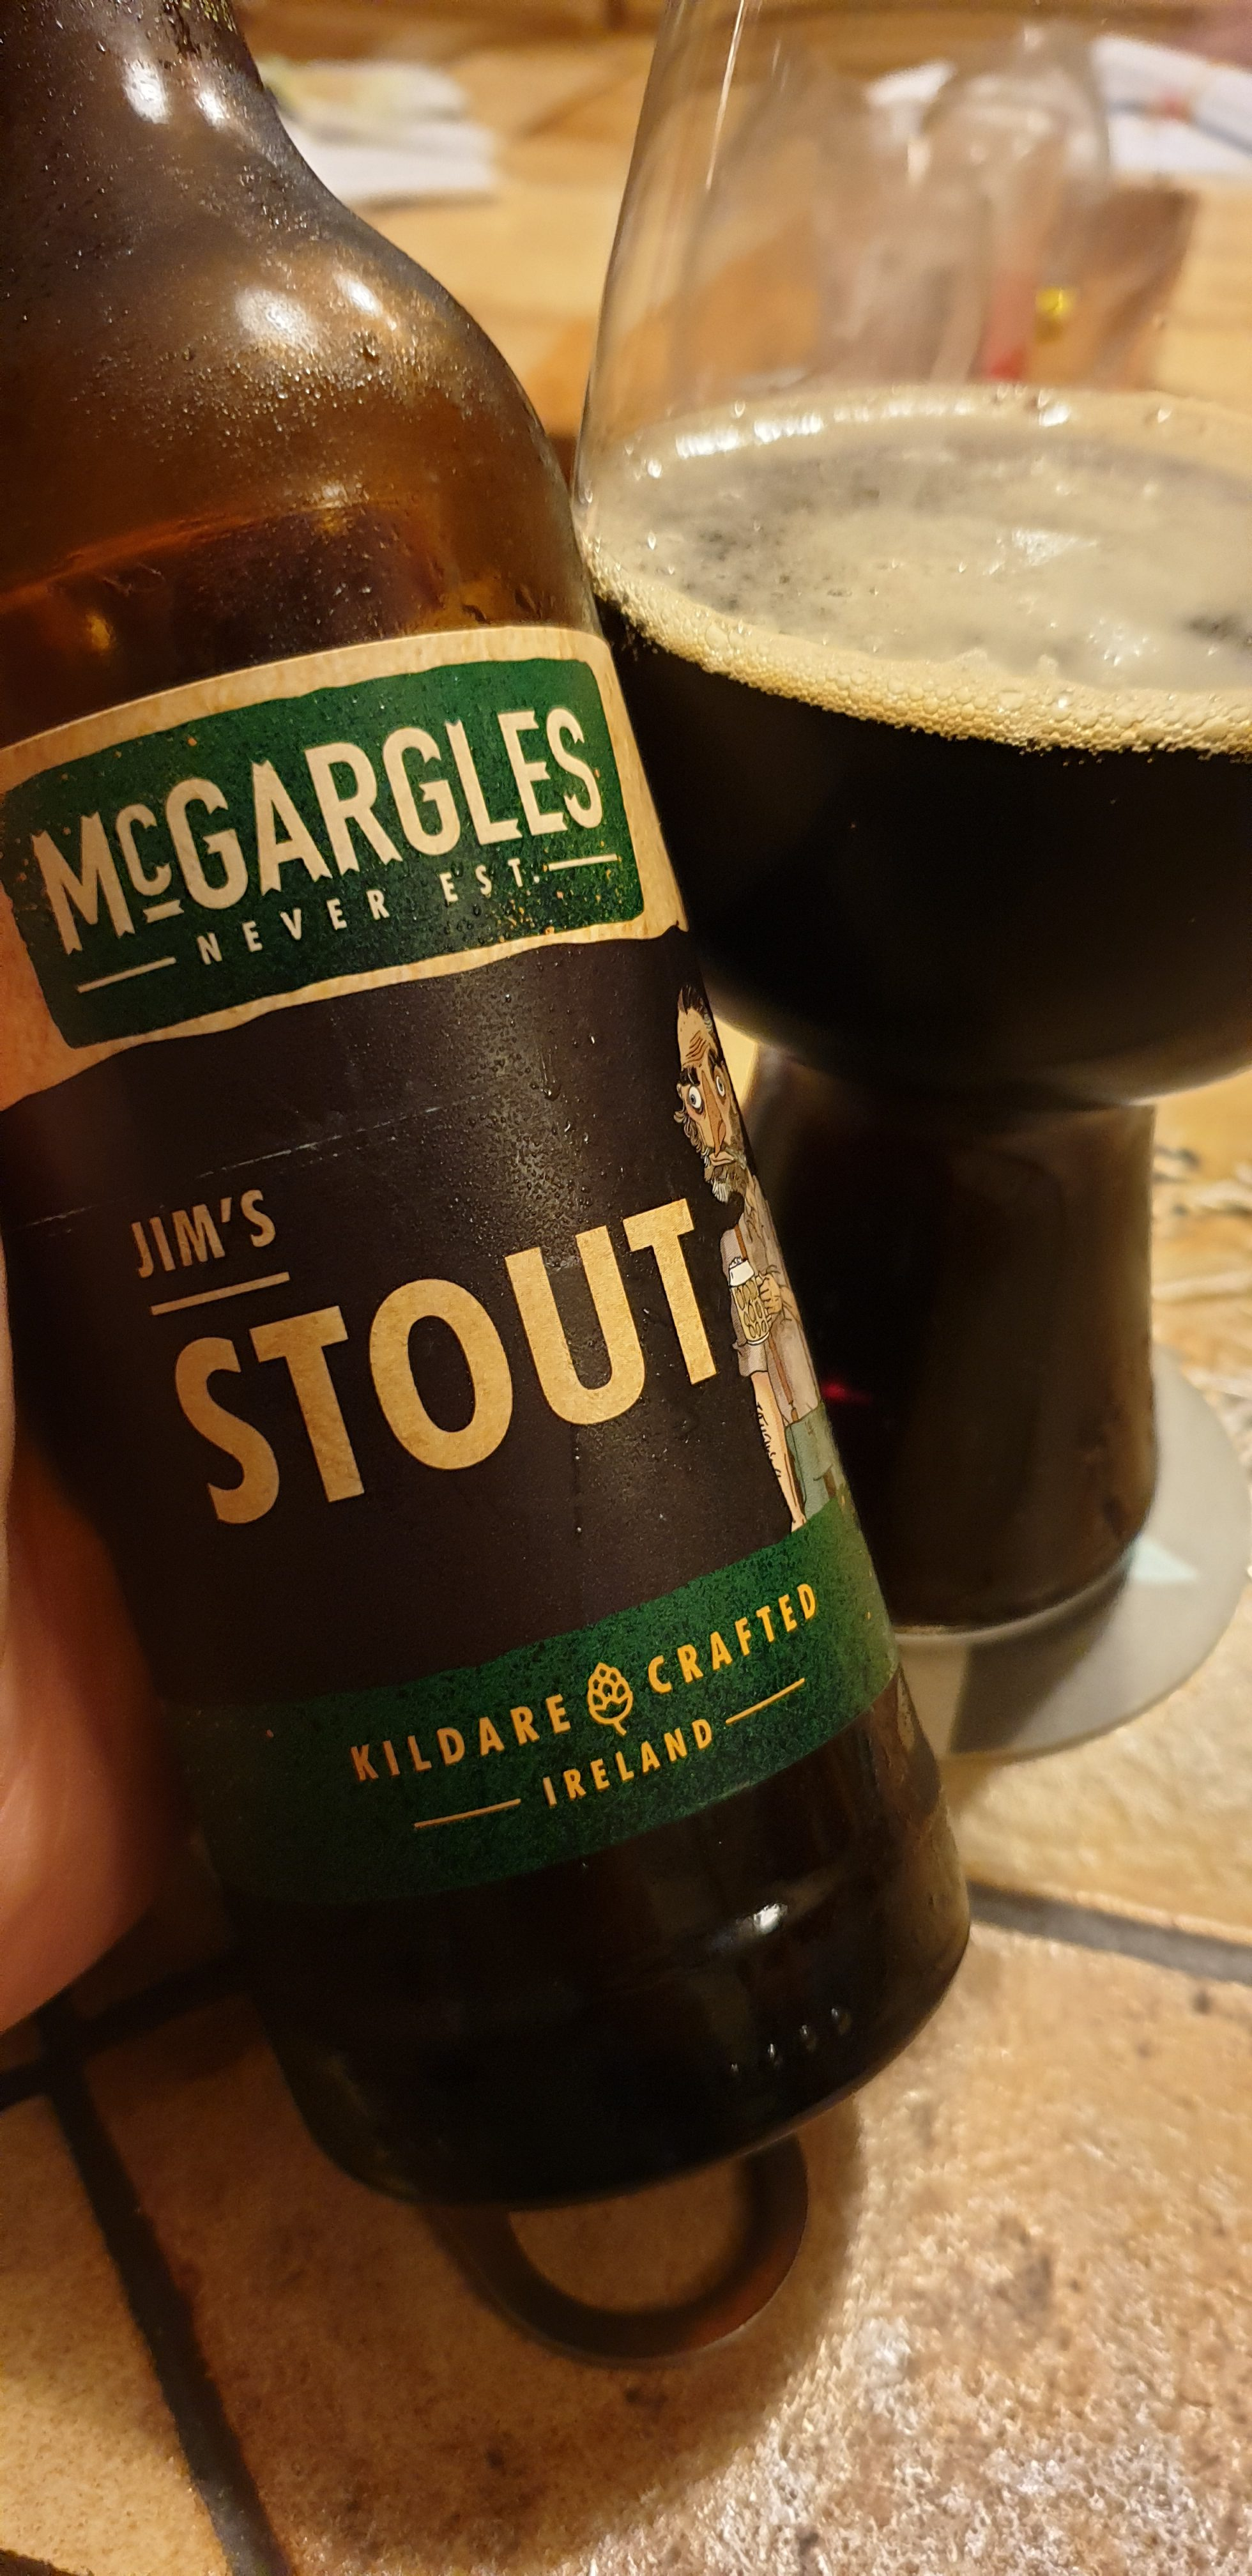 McGargles (Rye River Brewing) – Jim's Stout